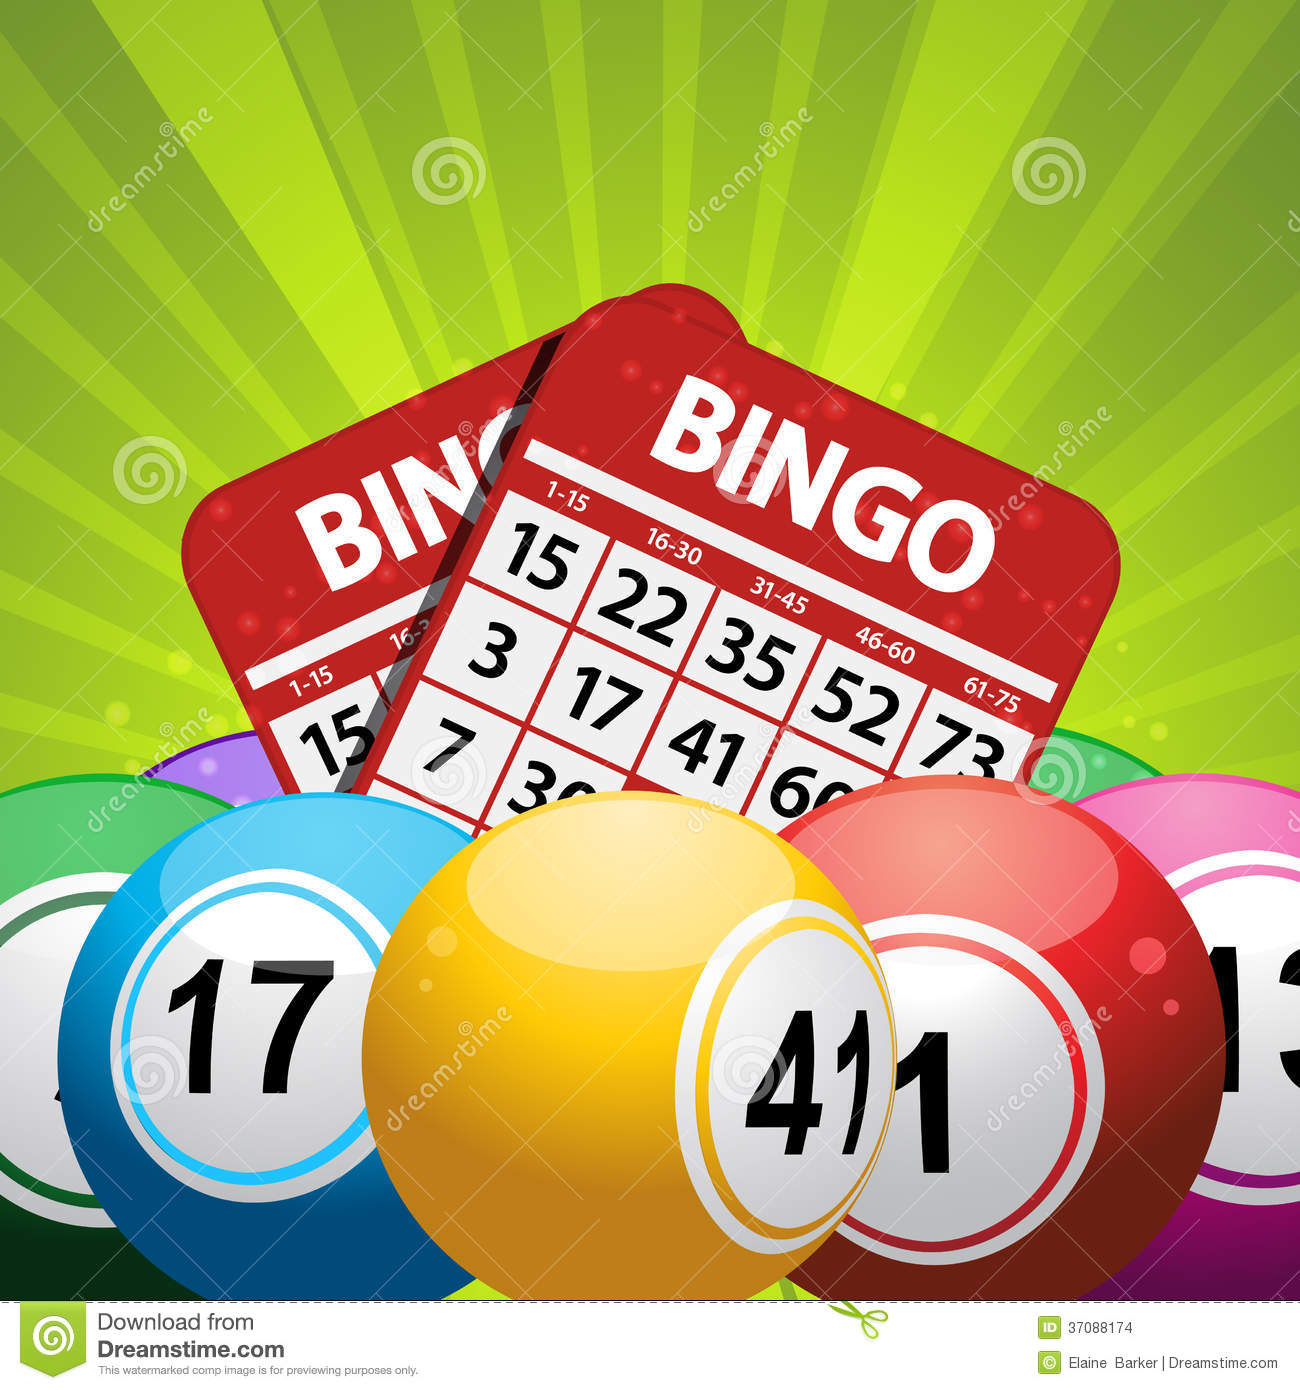 More similar stock images of ` Bingo balls and card background on a ...